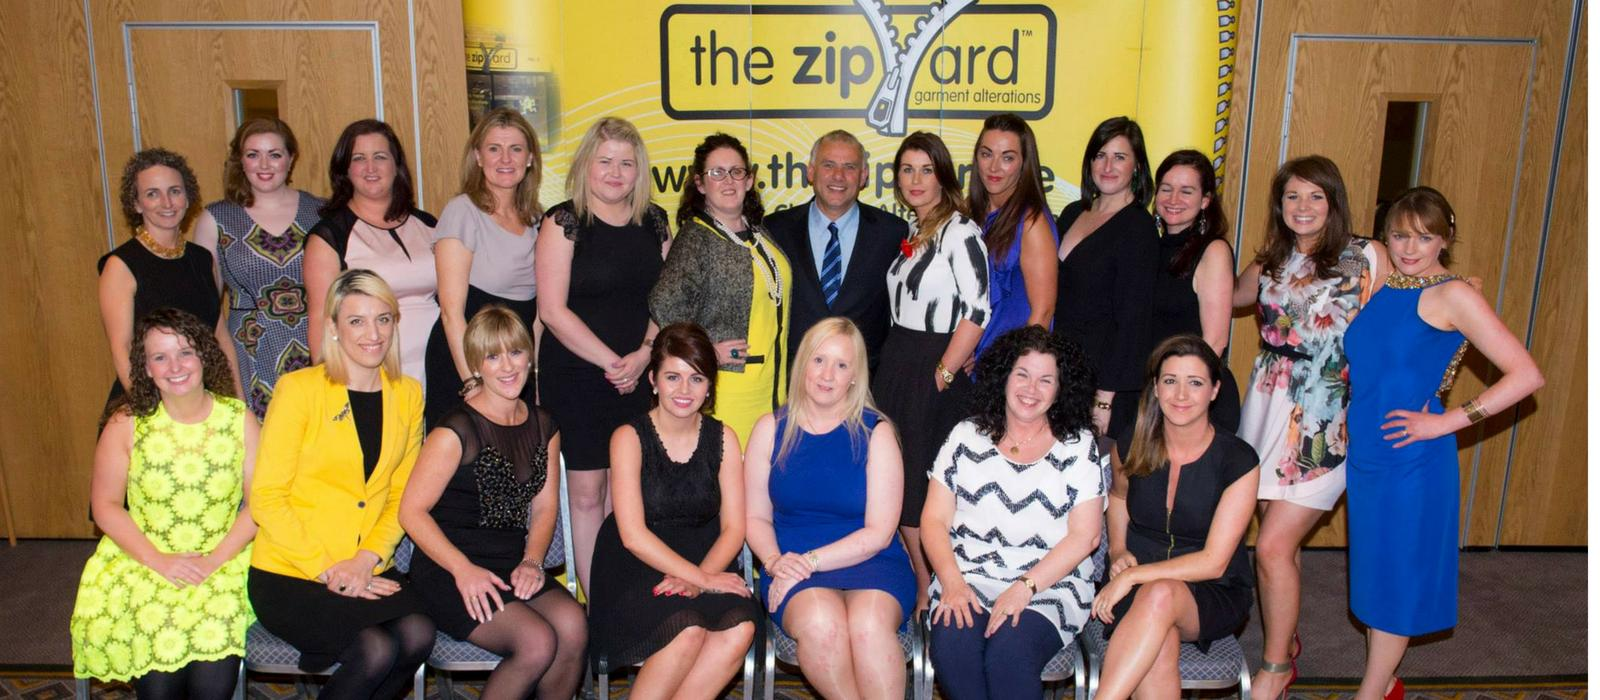 careers in The Zip Yard - Republic of Ireland